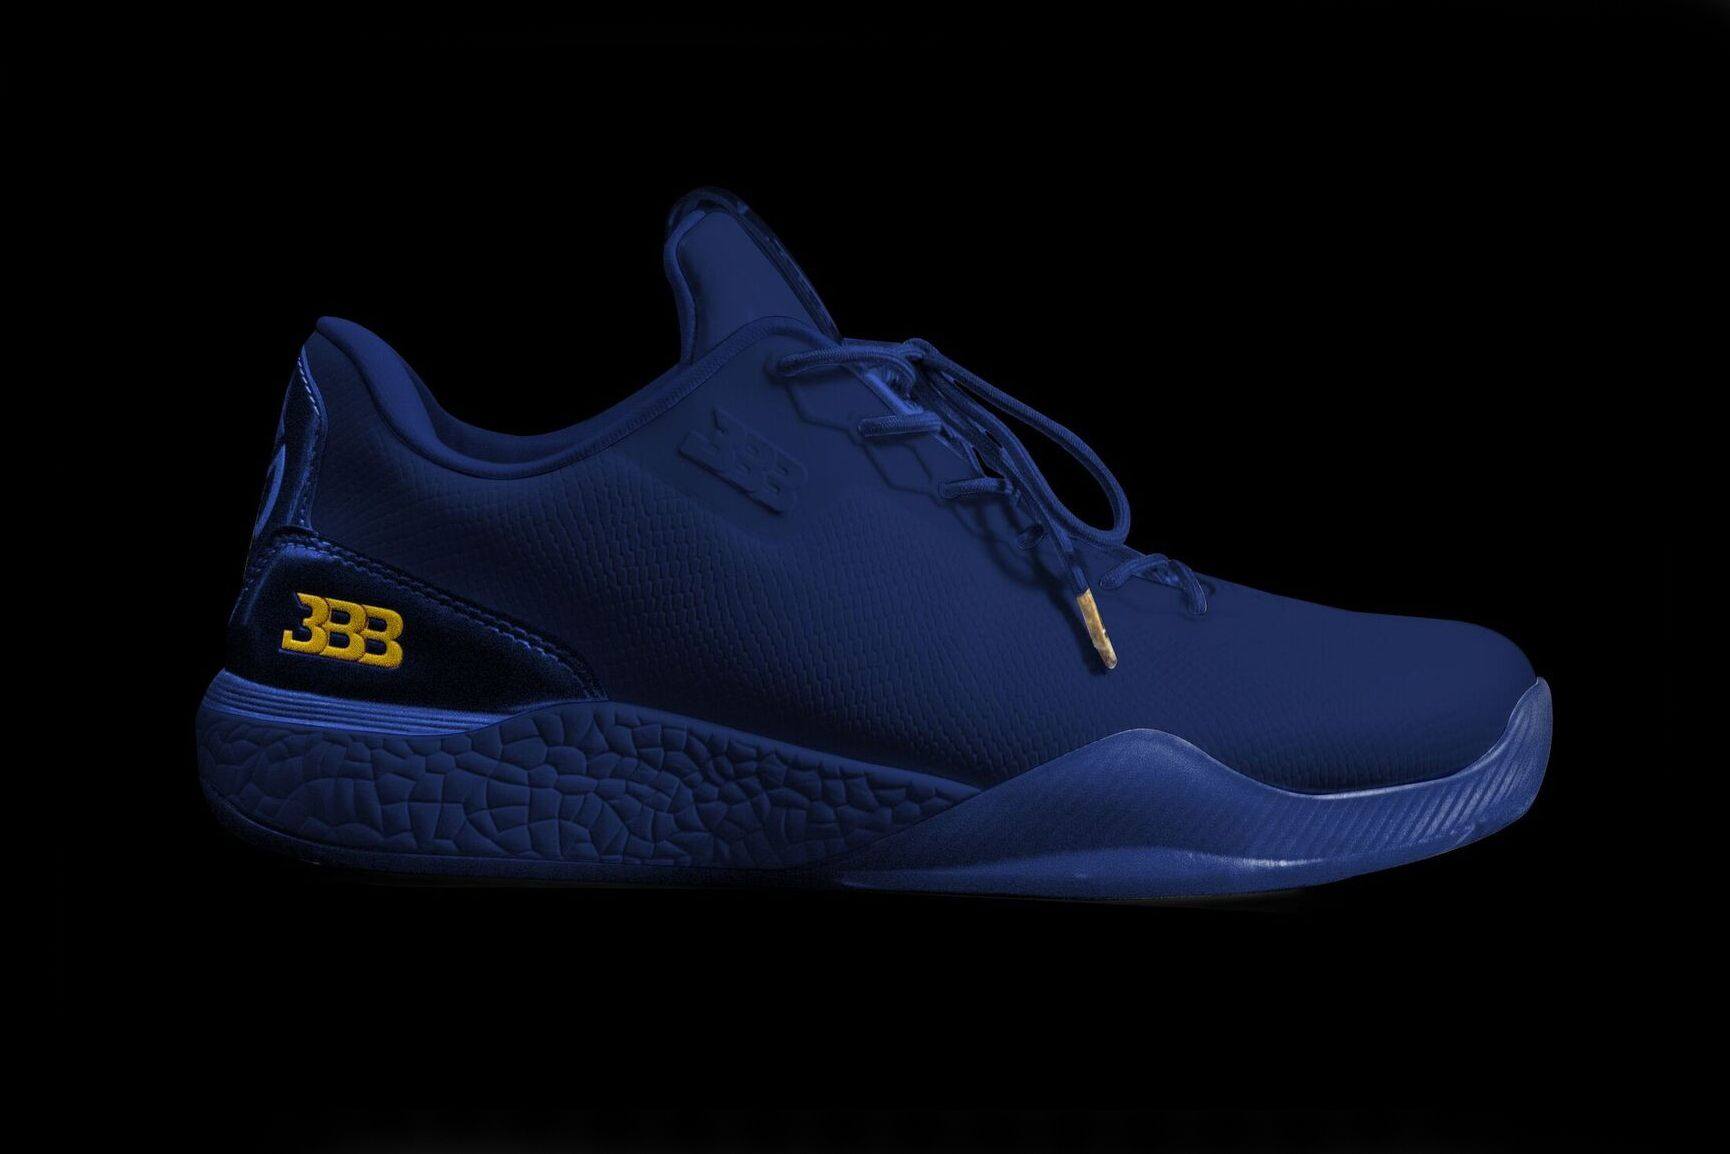 meet 25b07 765dc Big Baller Brand Celebrates Independence Day With Three New ZO2 Colorways